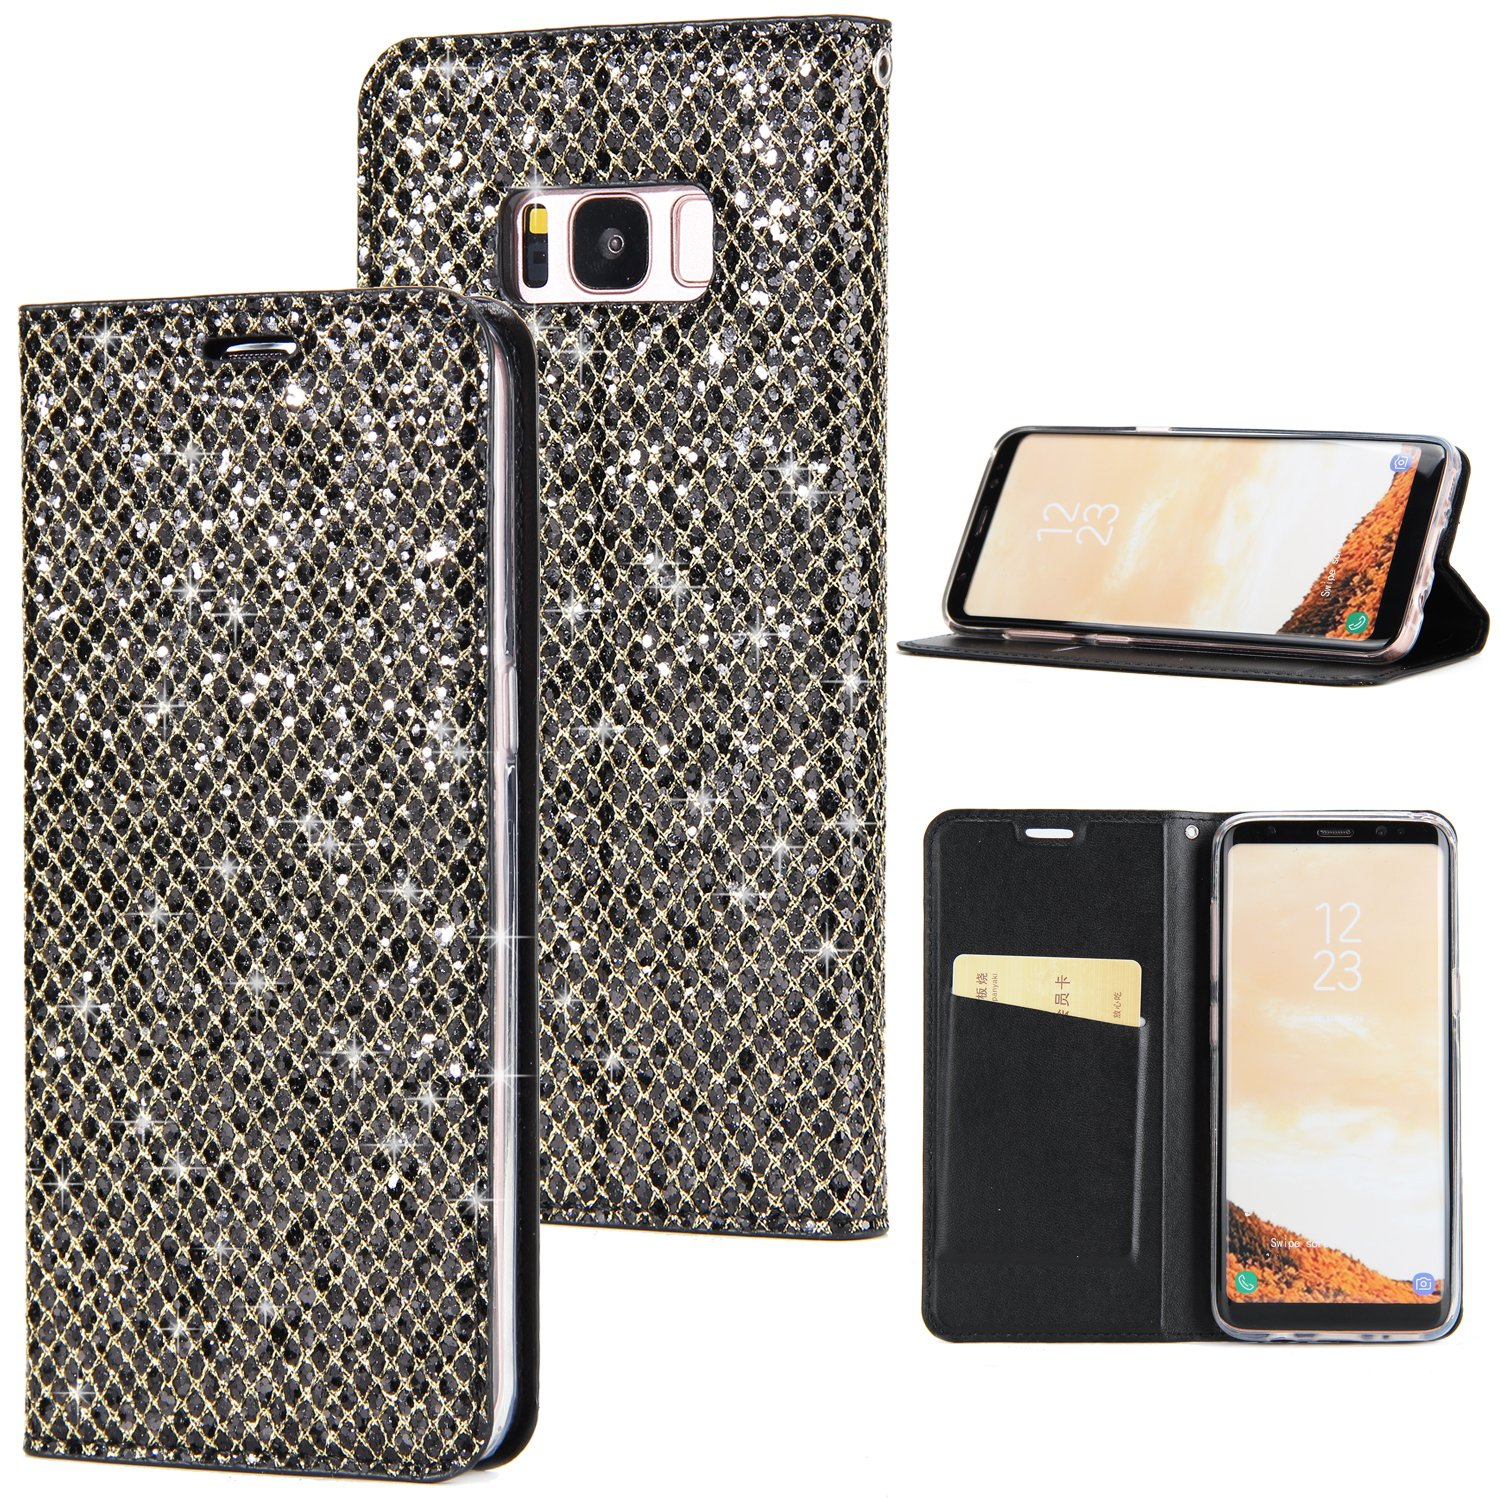 Misteem Coque Galaxy S8 Plus Paillette Cristal Strass, Coloré Motif Couverture Fermeture Magnétique Flip Case en Cuir Antichoc Portefeuille PU Stand Etui de Protection Glitter Brillant Bling Fente Carte Housse pour Samsung Galaxy S8 Plus (Rouge)